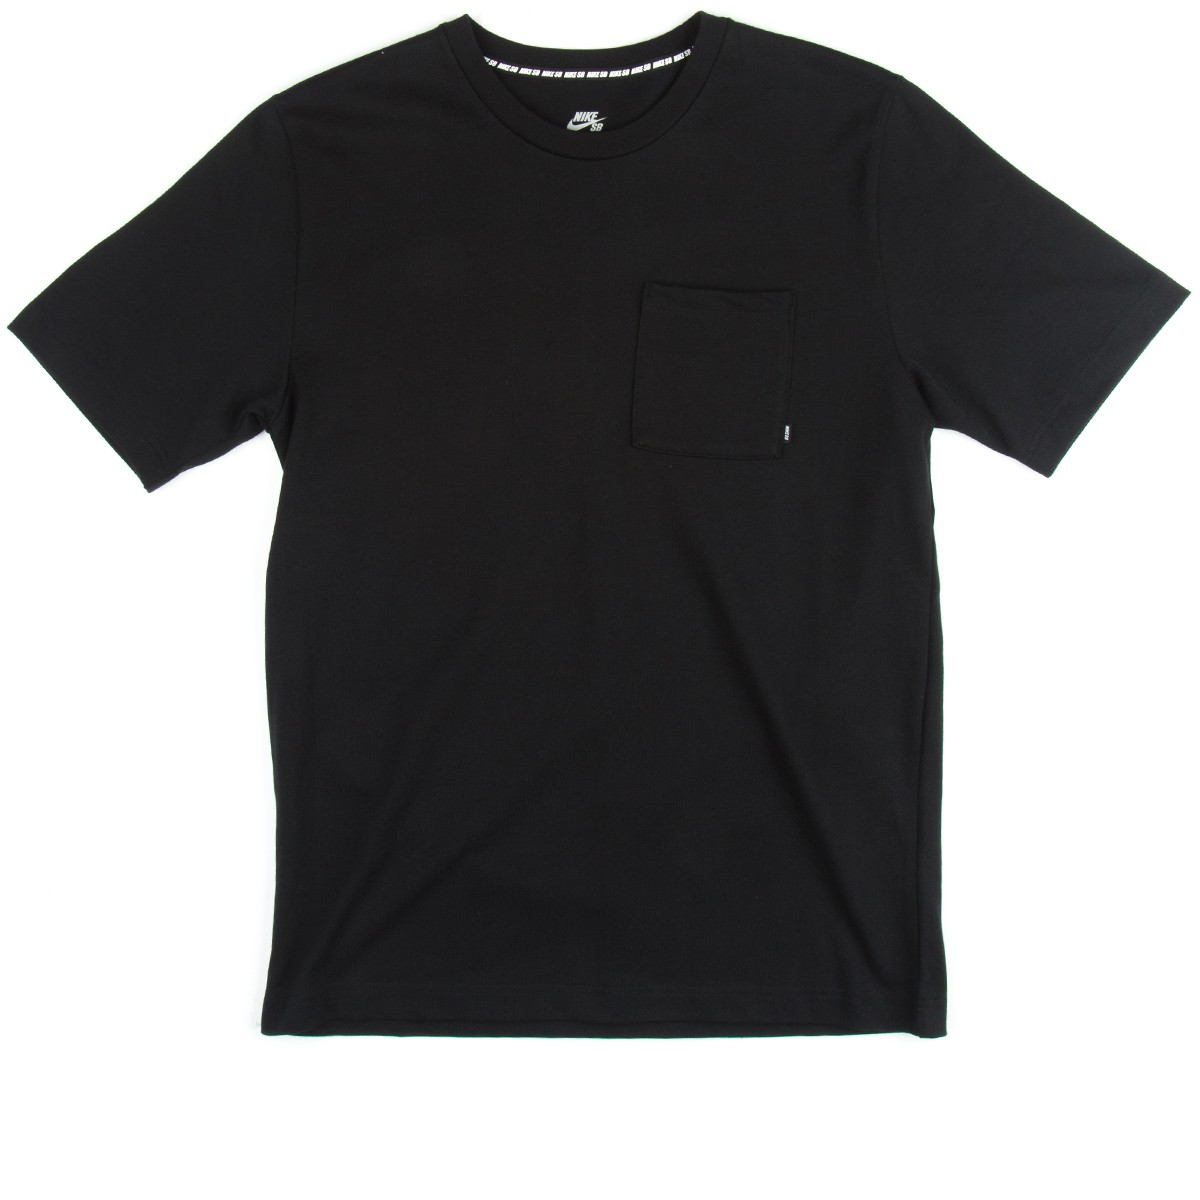 Nike sb heavy weight cotton t shirt black for Name brand t shirts on sale